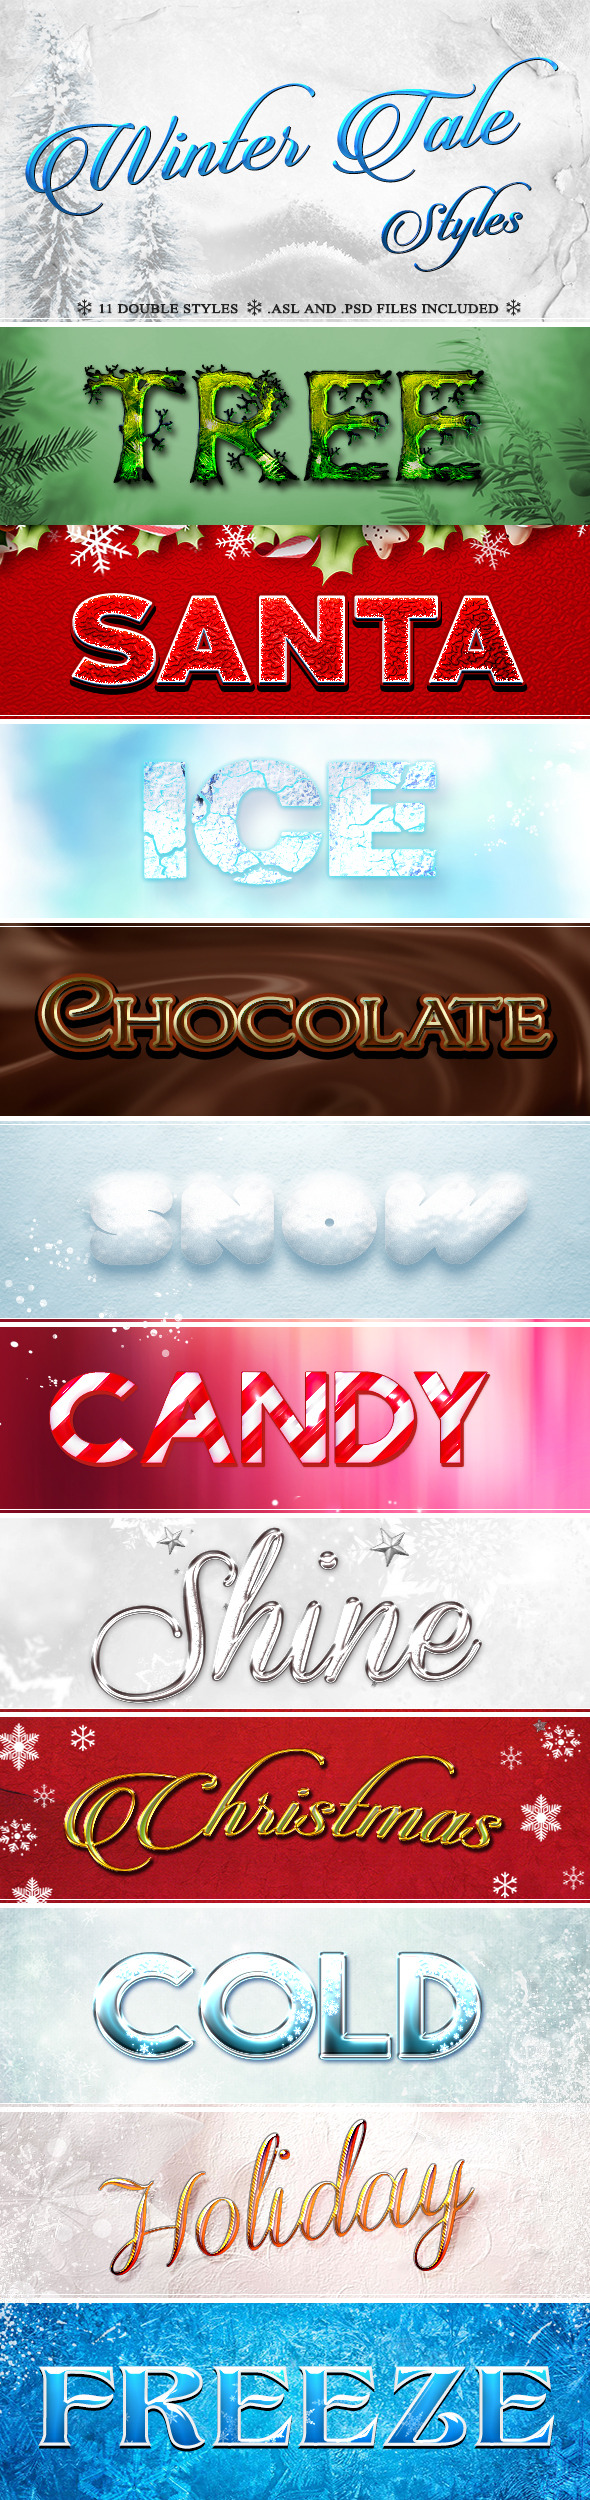 GraphicRiver Winter Tale Styles 9456308